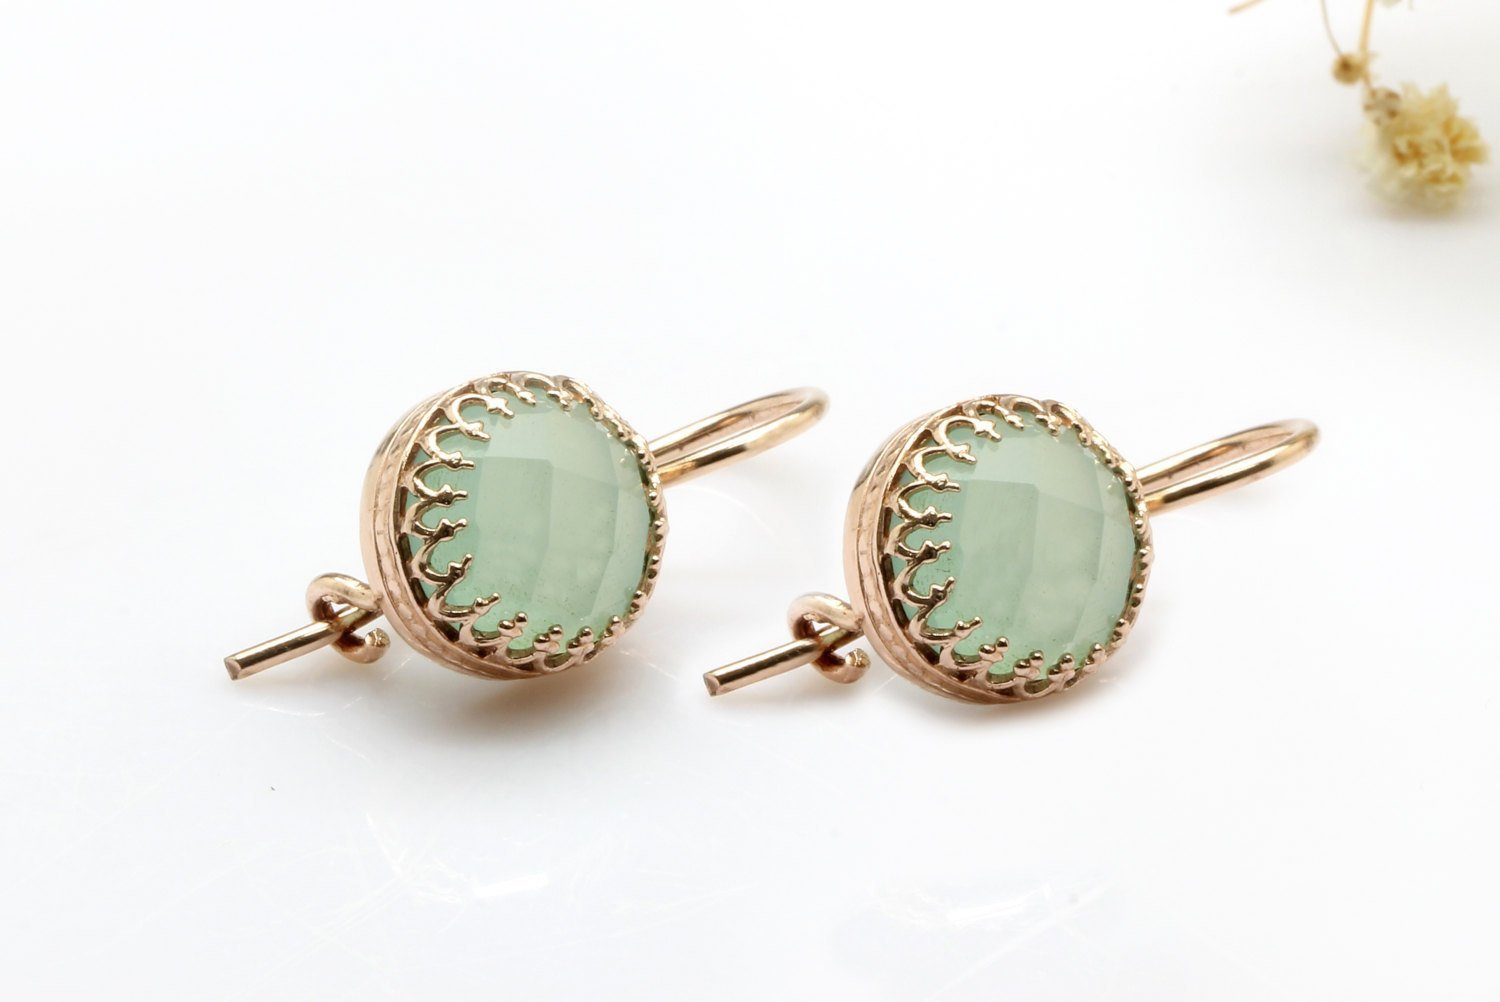 rose gold earrings, small stone earrings, aqua earrings, chalcedony earrings, Christmas gift, bridal earrings